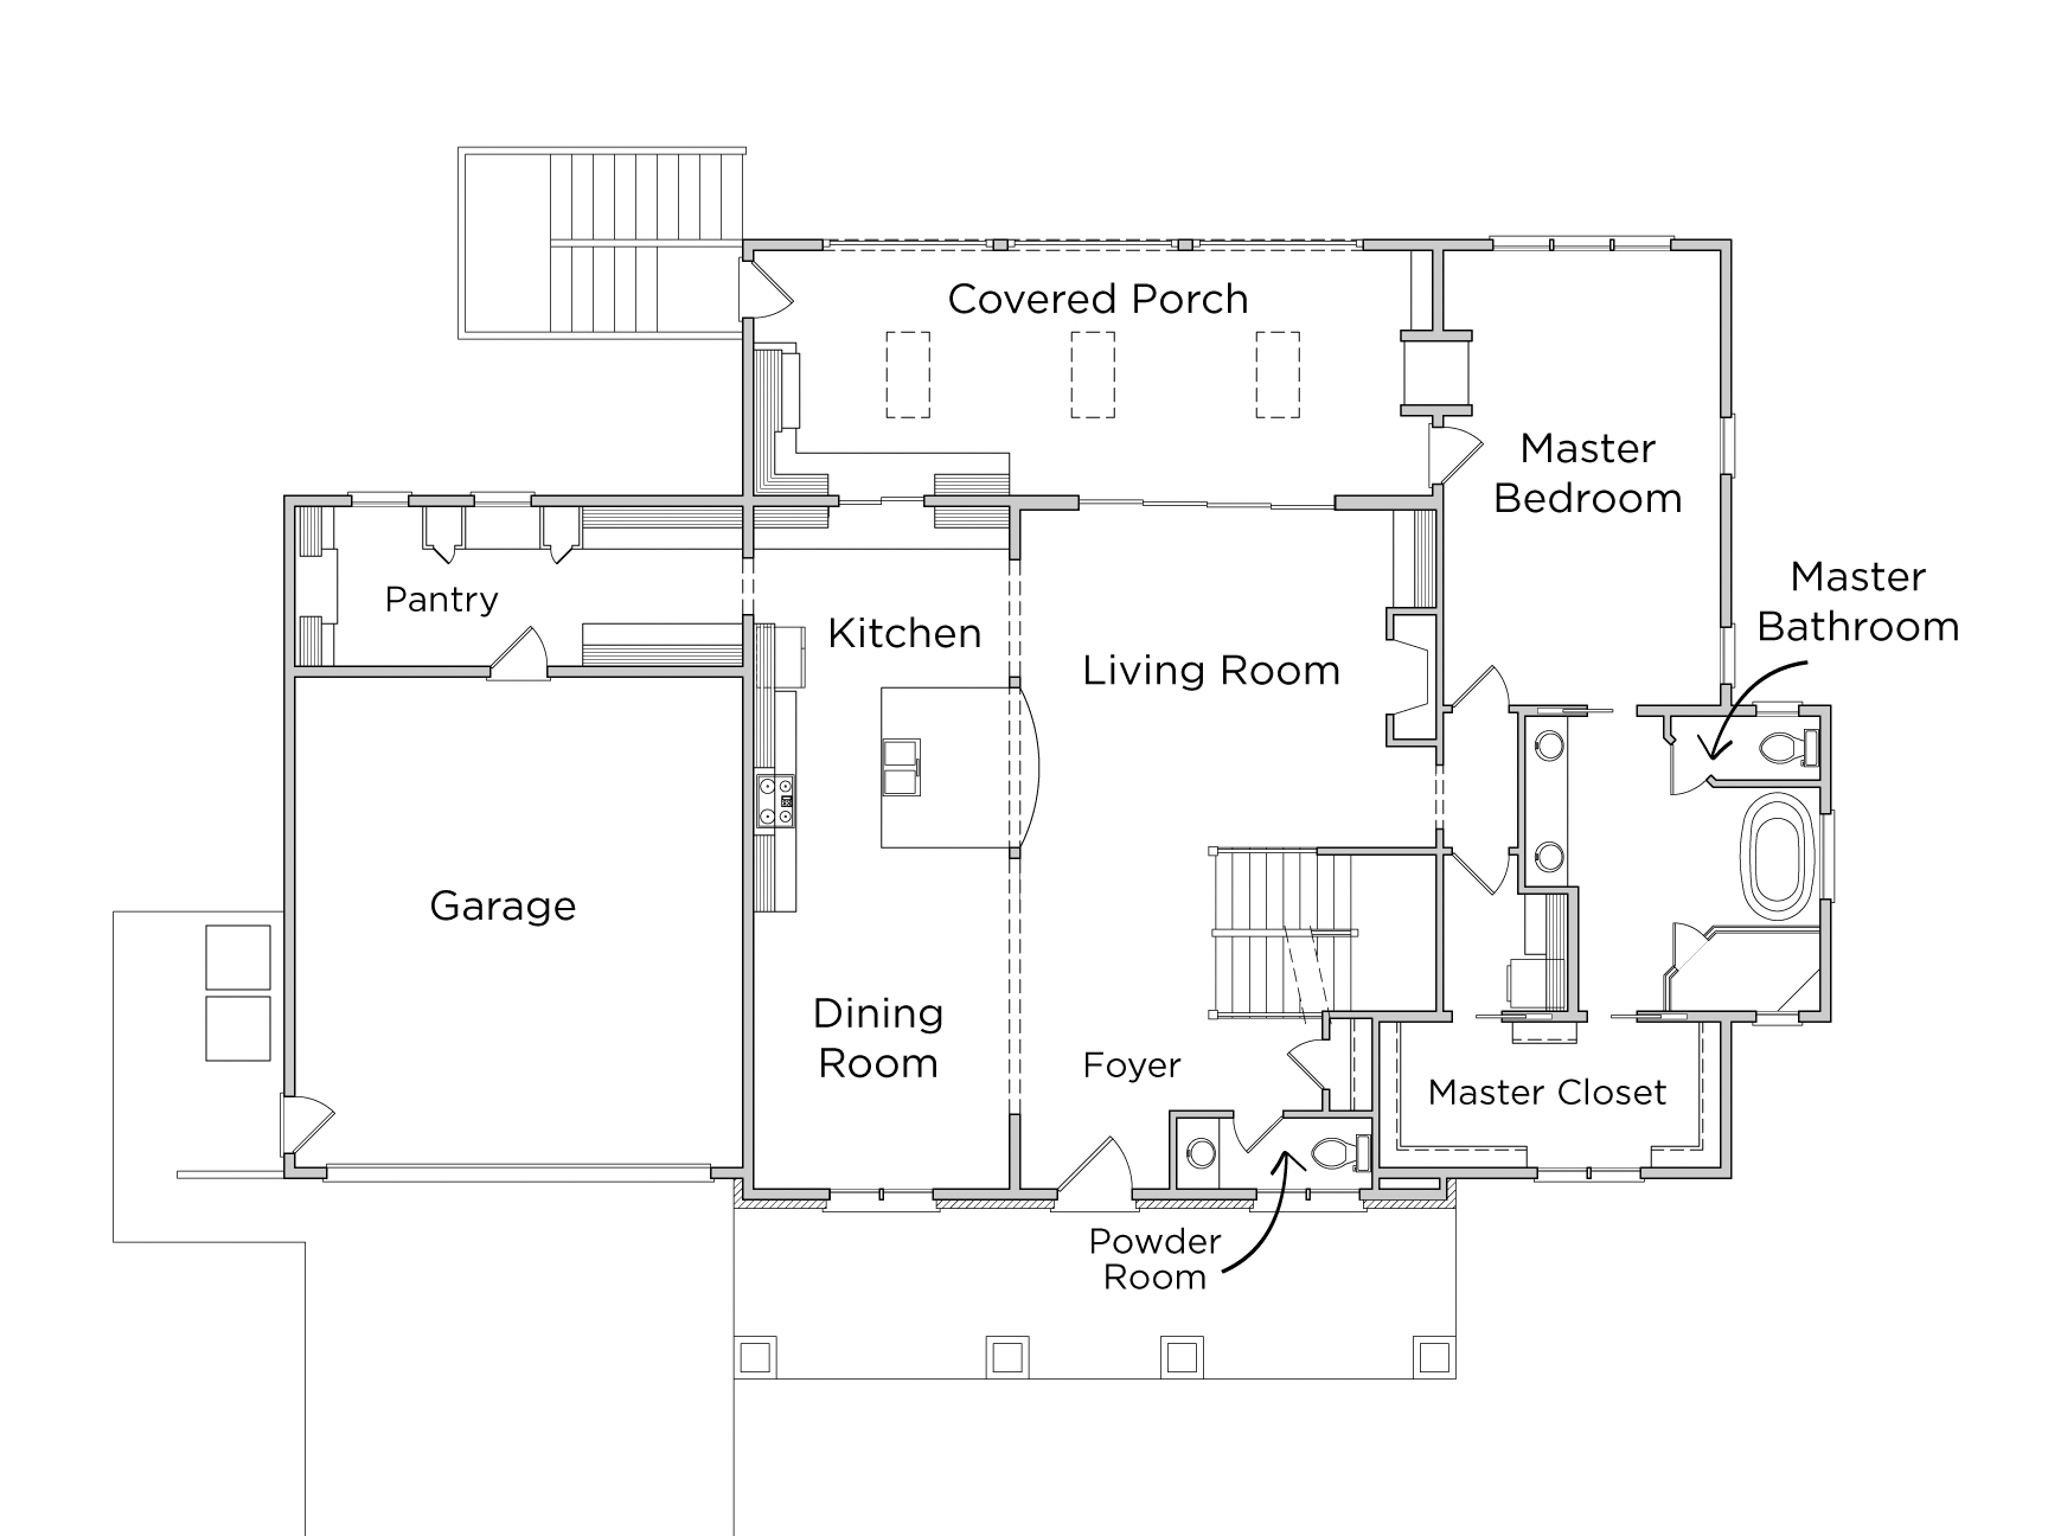 basement floor - Home Floor Plans